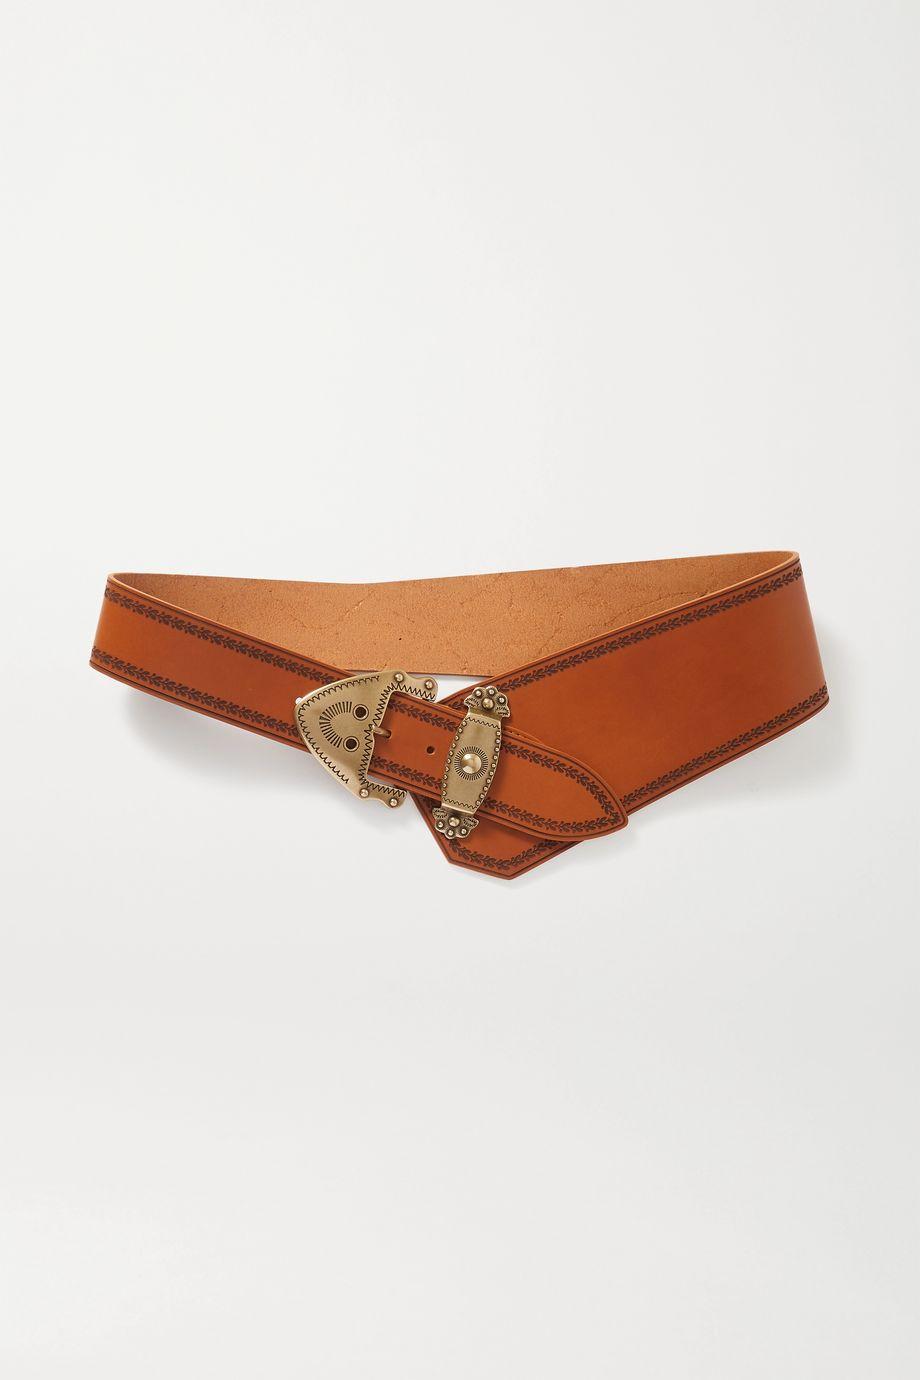 Isabel Marant Liko asymmetric leather belt